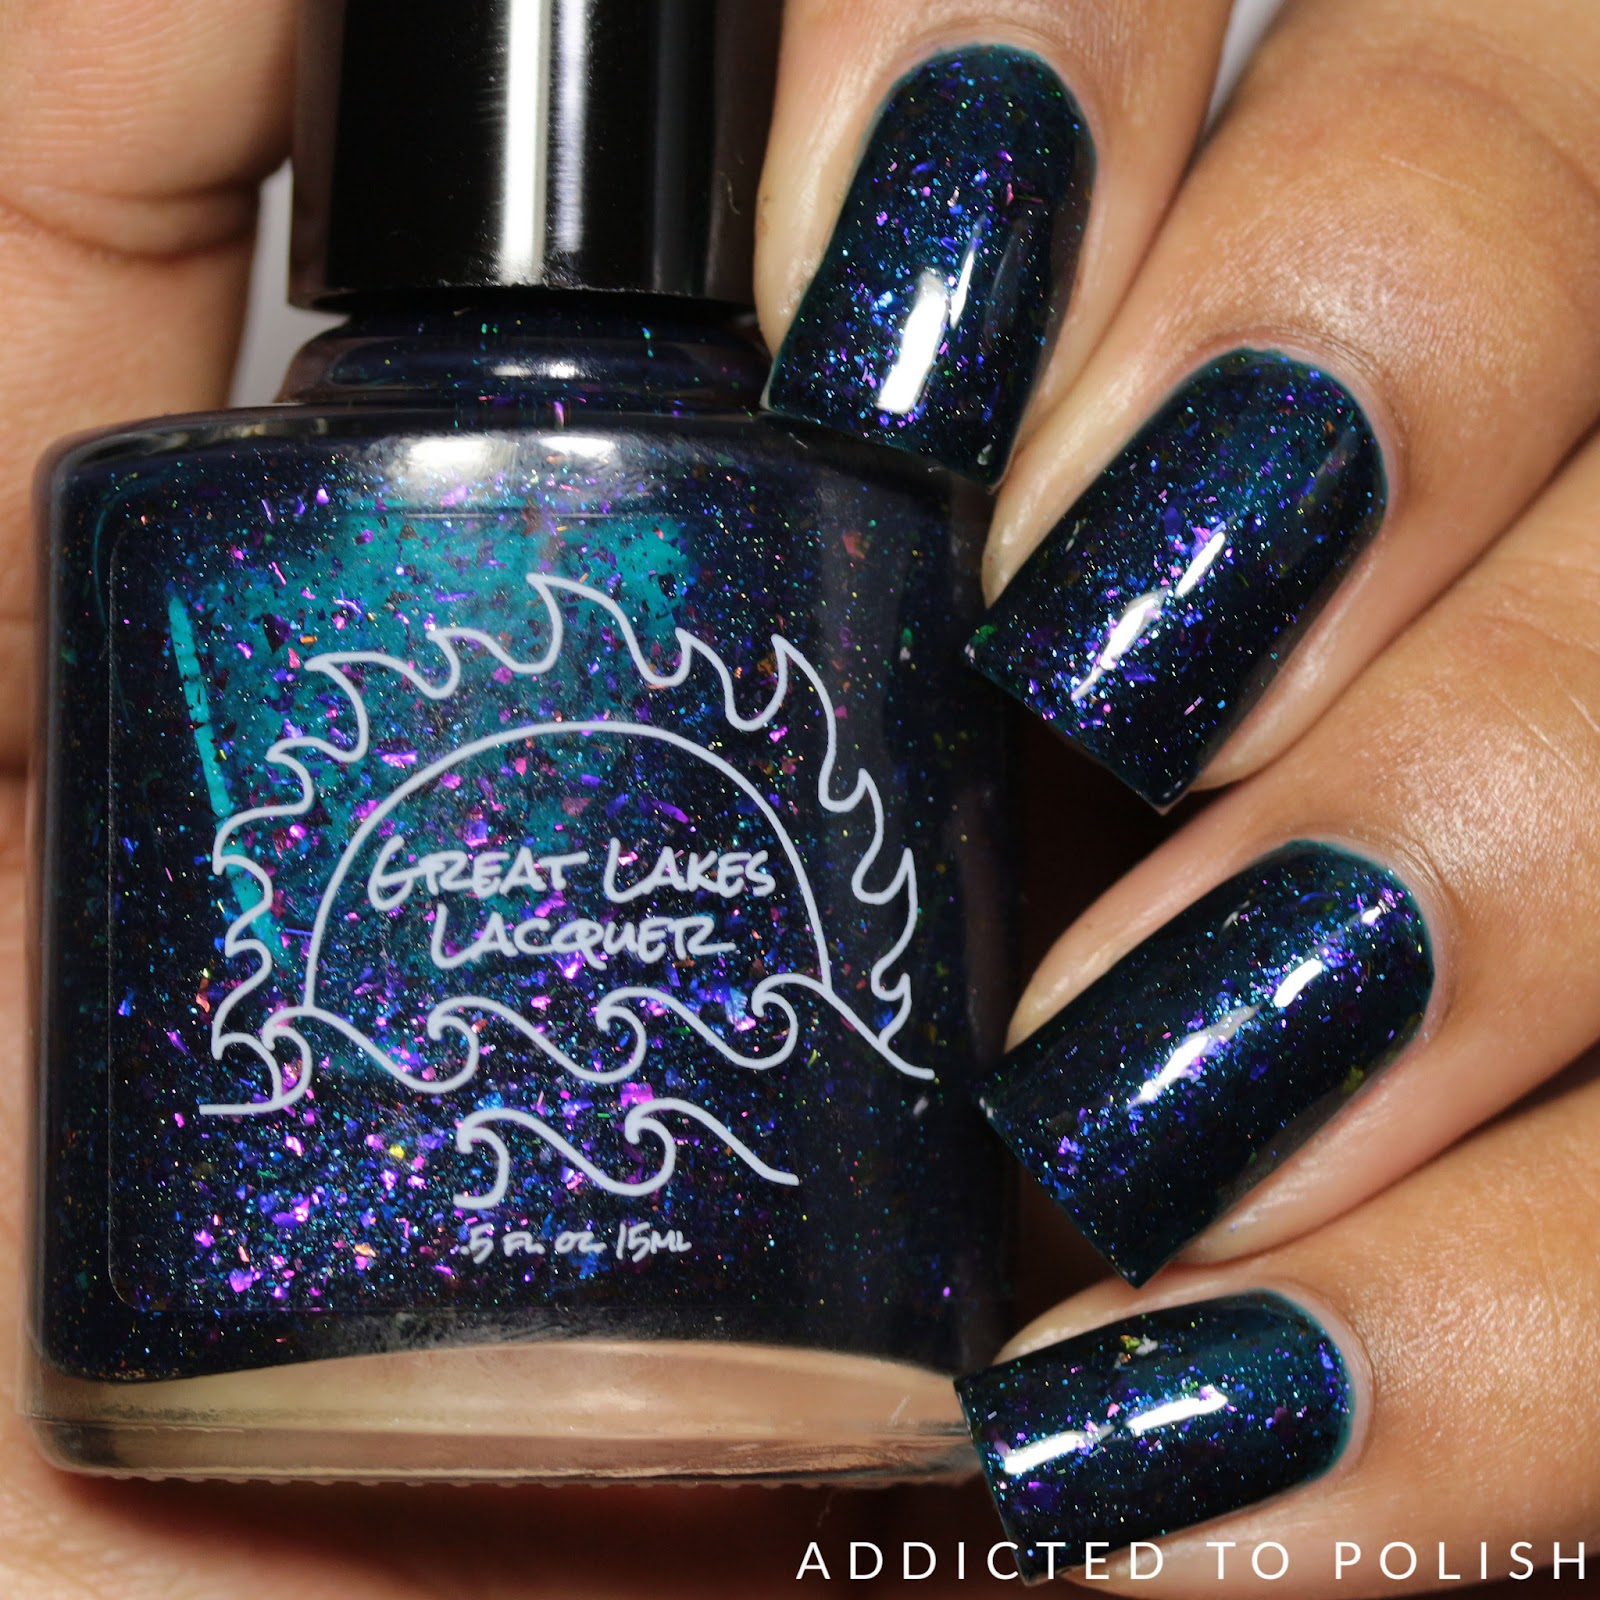 Great Lakes Lacquer It Calls to Me fan group customs